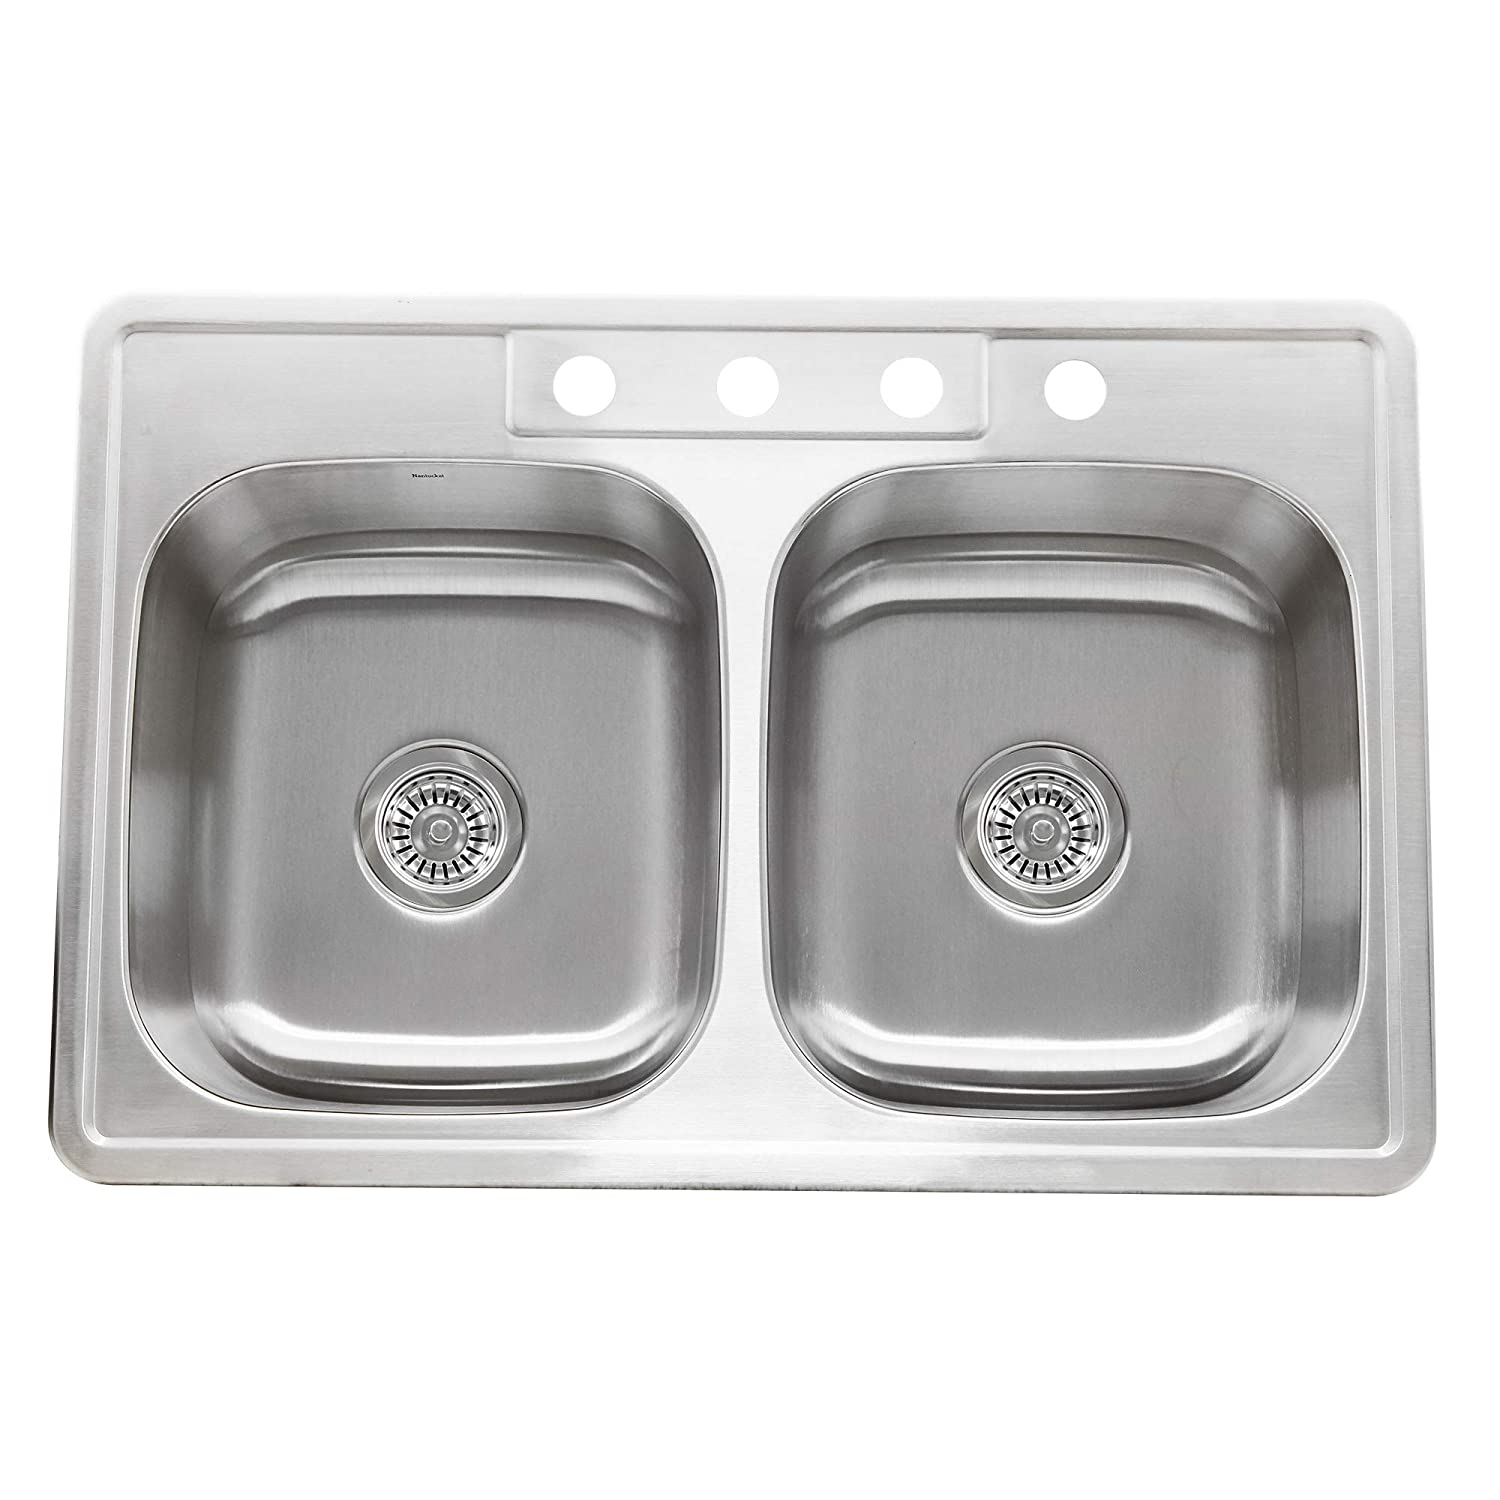 Nantucket Sinks NS3322-DE-9 33-Inch Drop-In Double Bowl Stainless Steel Kitchen Sink